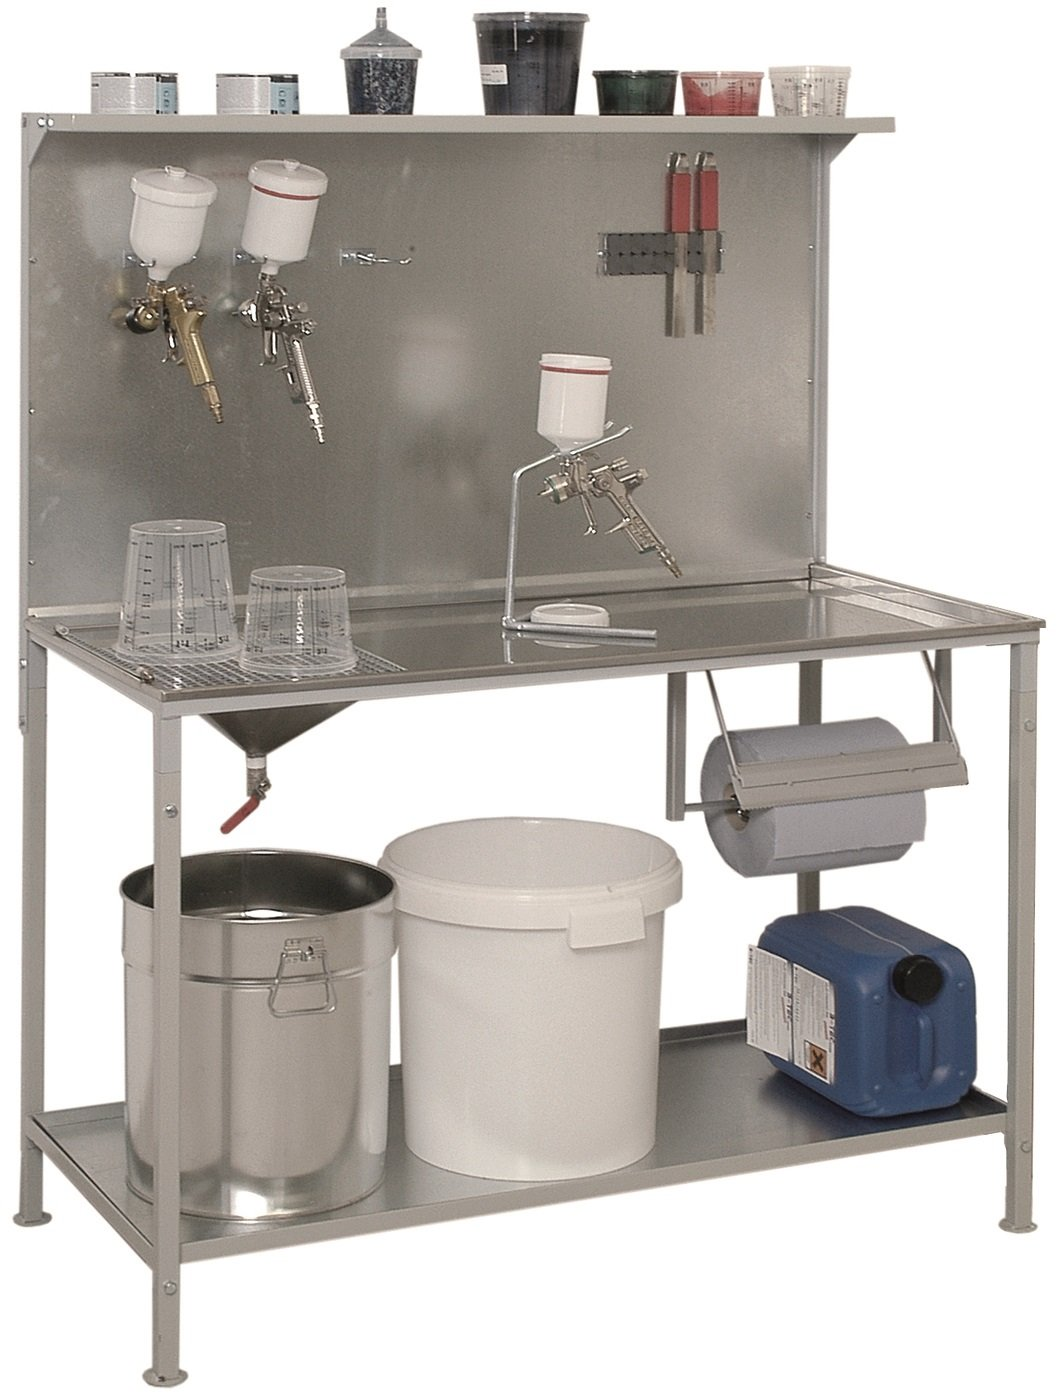 B-TEC Systems P-01 Stainless Steel Mixing and Work Table, 61'' Length x 24'' Width x 55-1/2'' Height